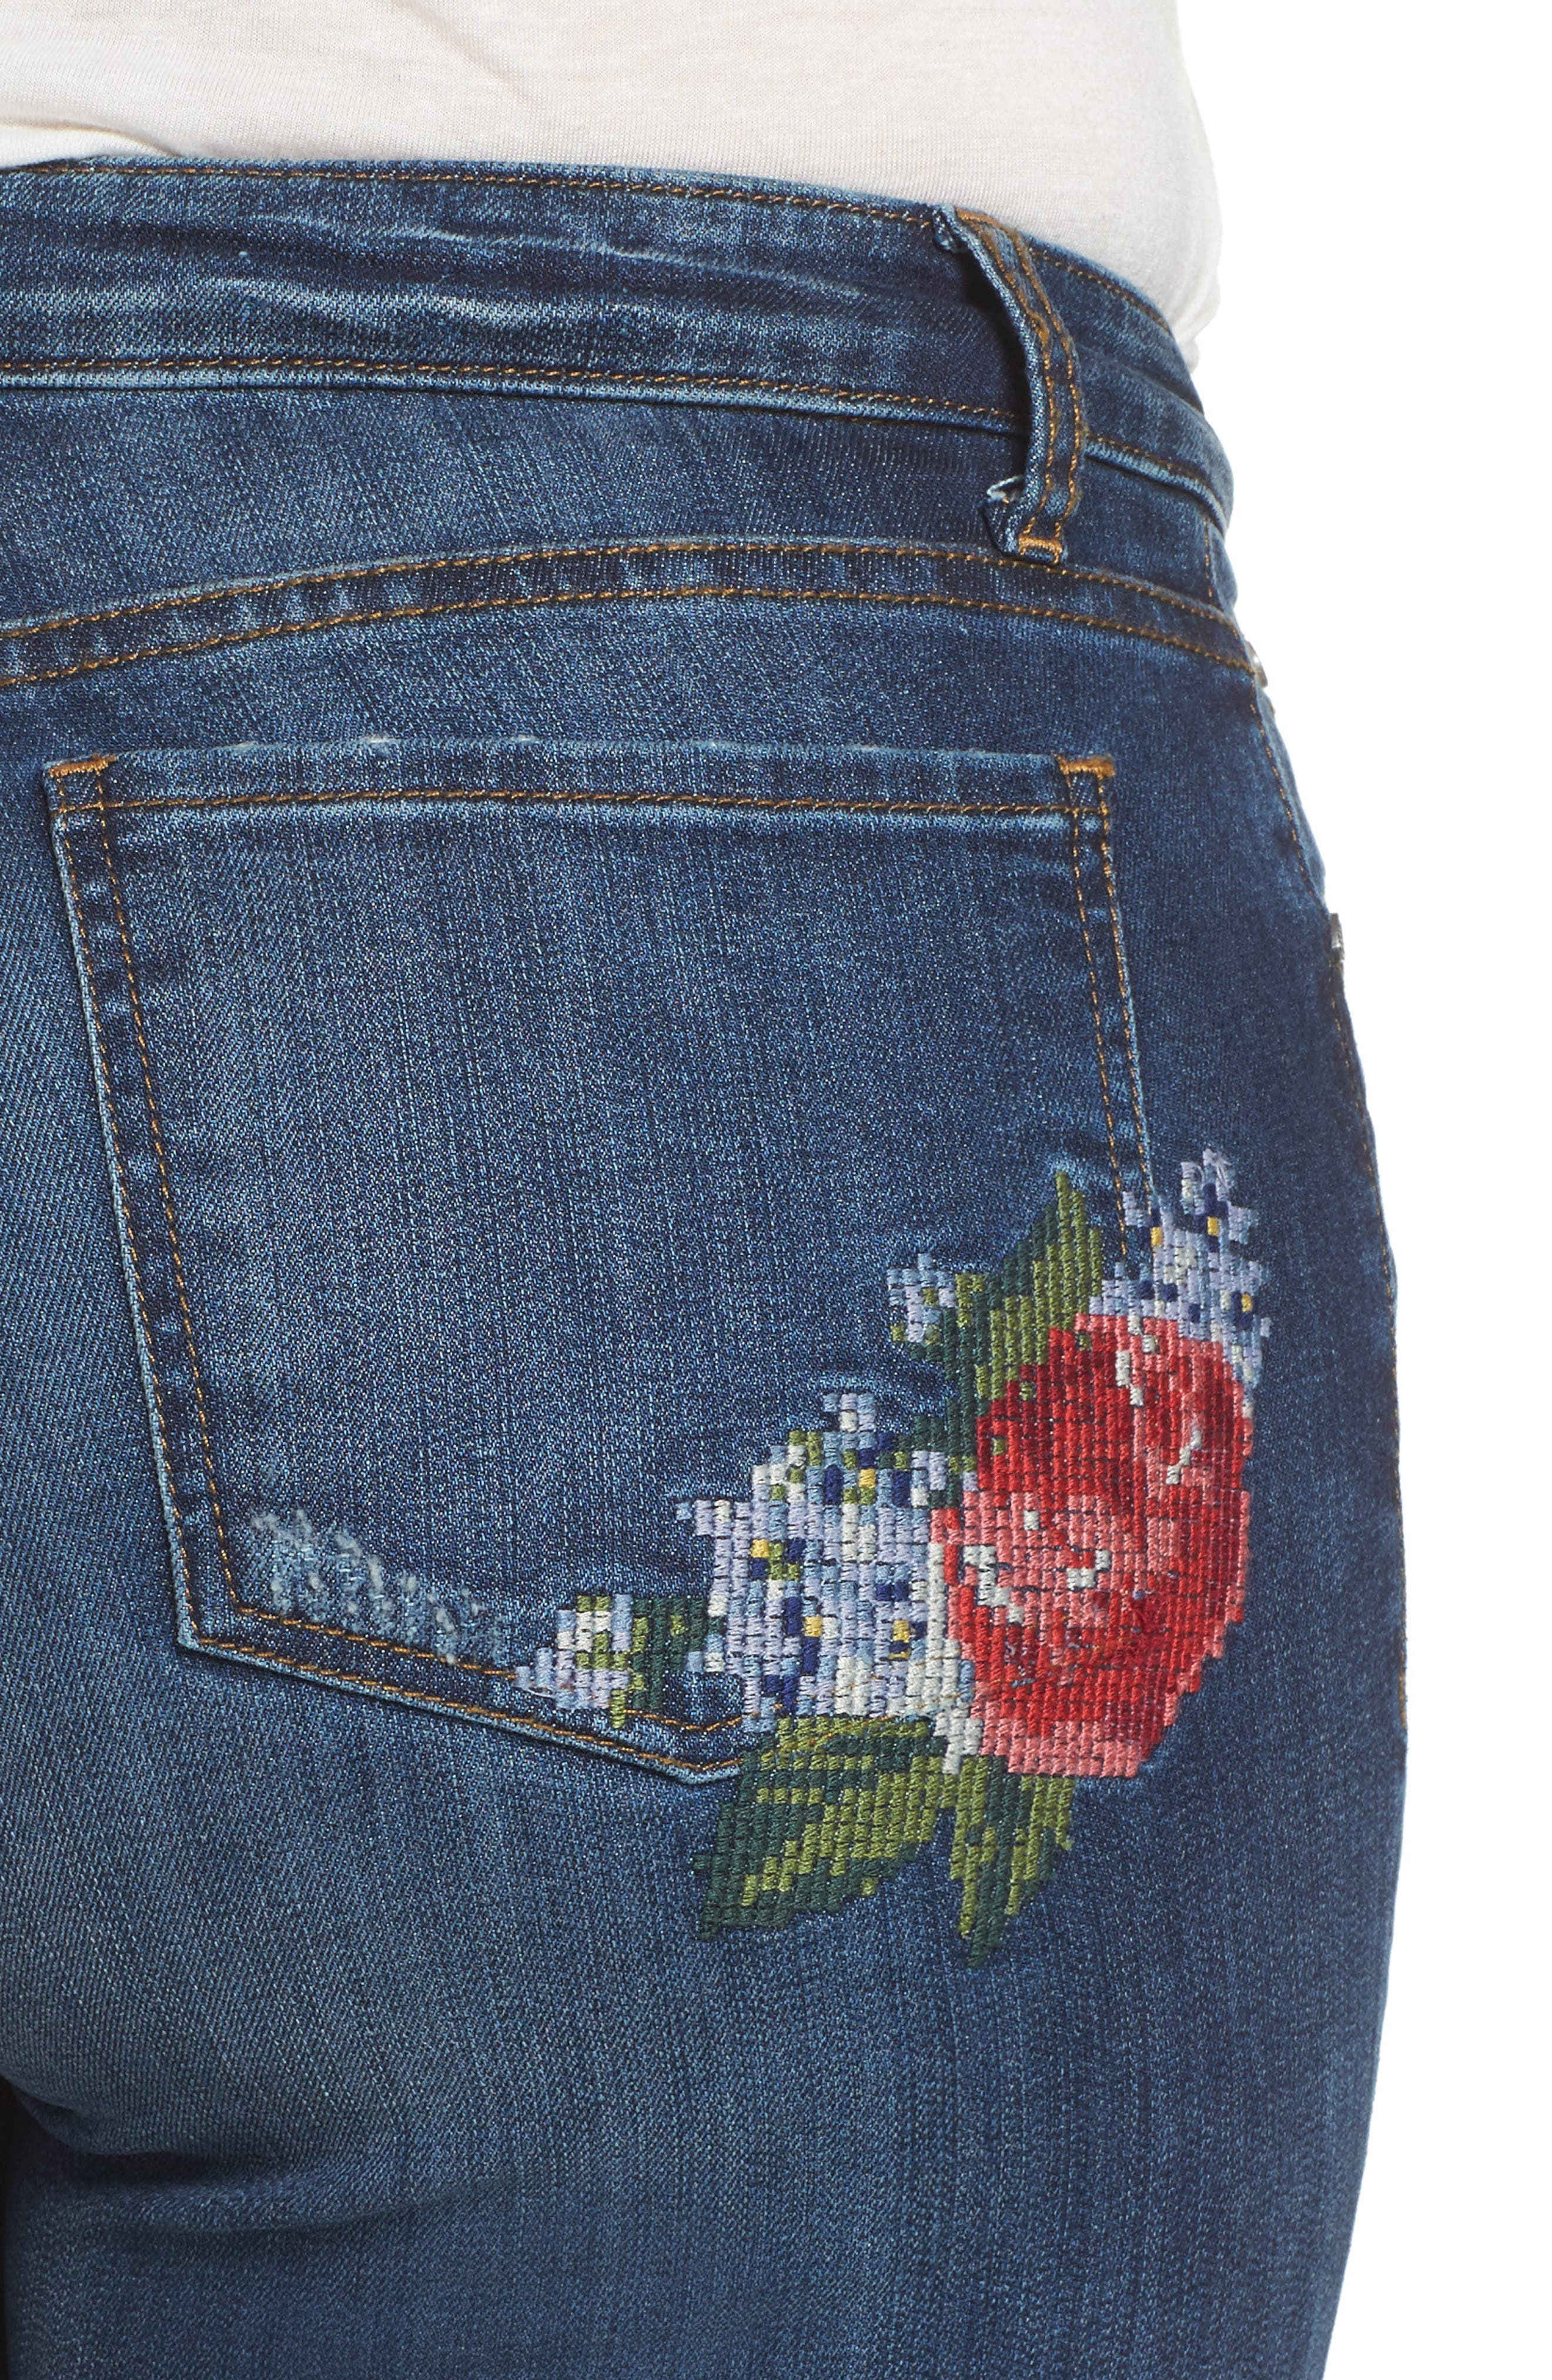 Catherine Embroidered Boyfriend Jeans,                             Alternate thumbnail 4, color,                             400